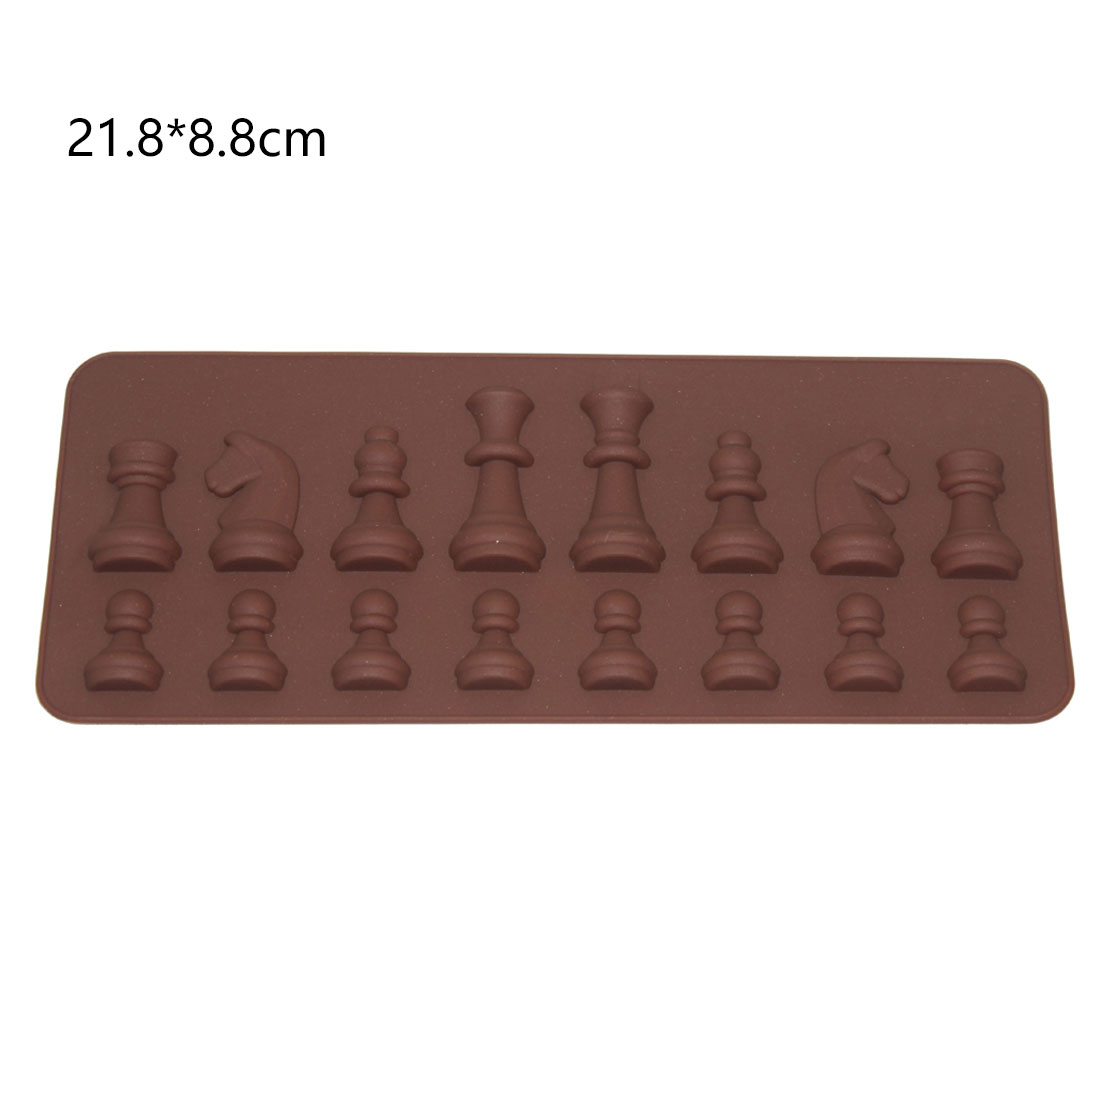 Gift International Chess King Queen Knight Rook Pawn Bishop Single-Sided Fondant Cake Chocolate Molds Kitchen Baking